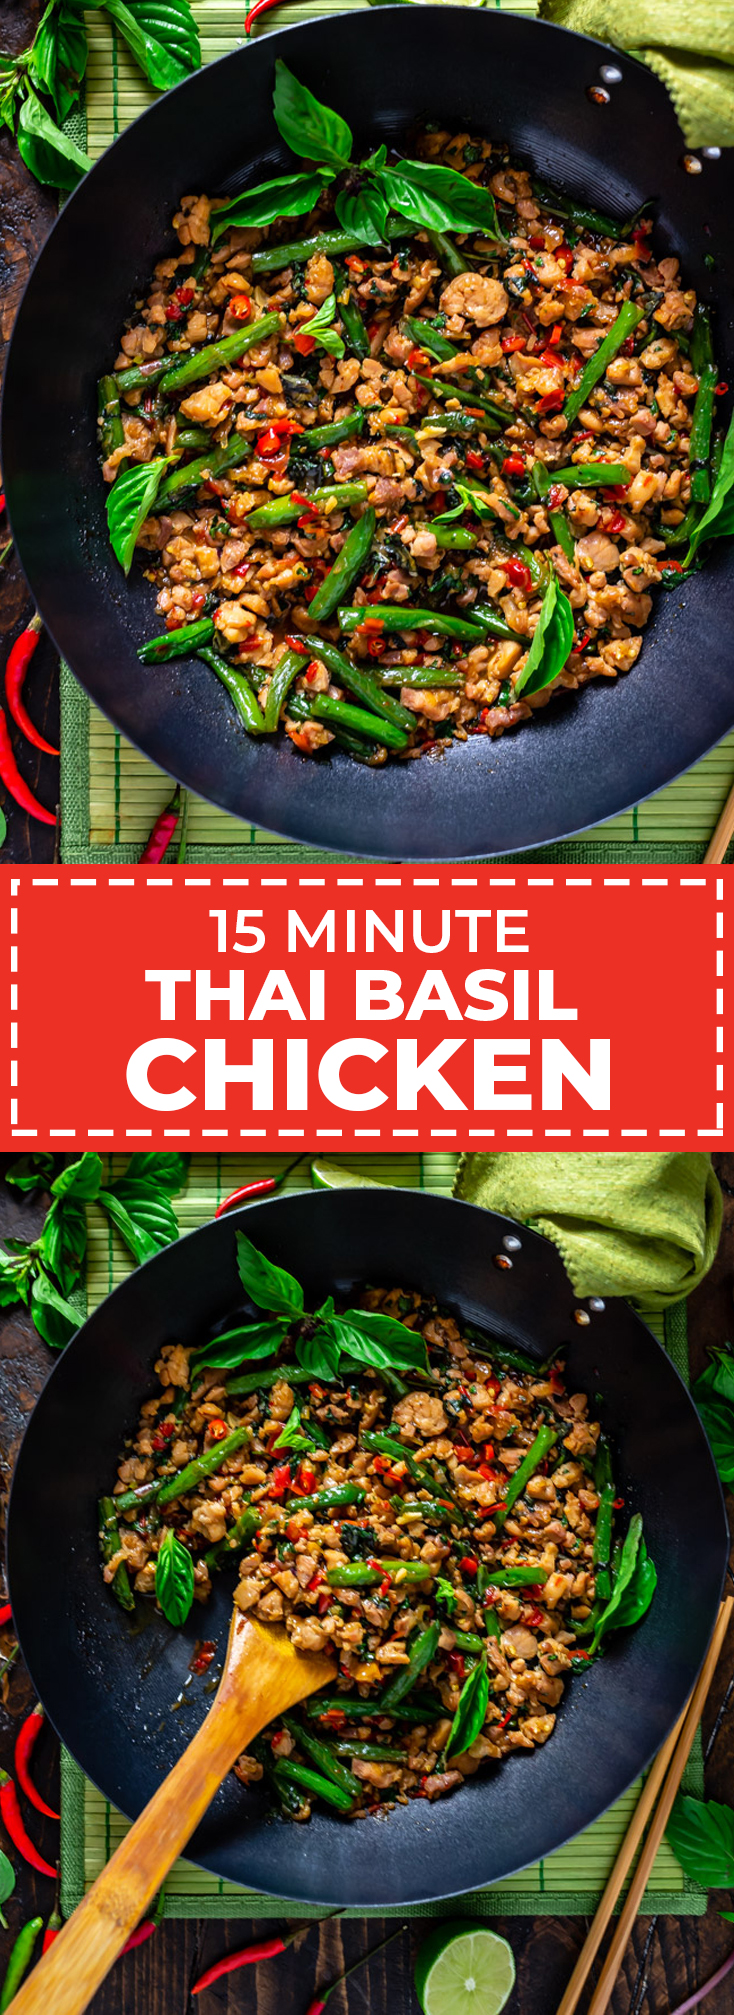 15 Minute Thai Basil Chicken. When it comes to Thai recipes, this stir fry is one of the most popular and easiest to make. It's flavorful, fast, and is going to become one of your favorite quick dinners. | hostthetoast.com